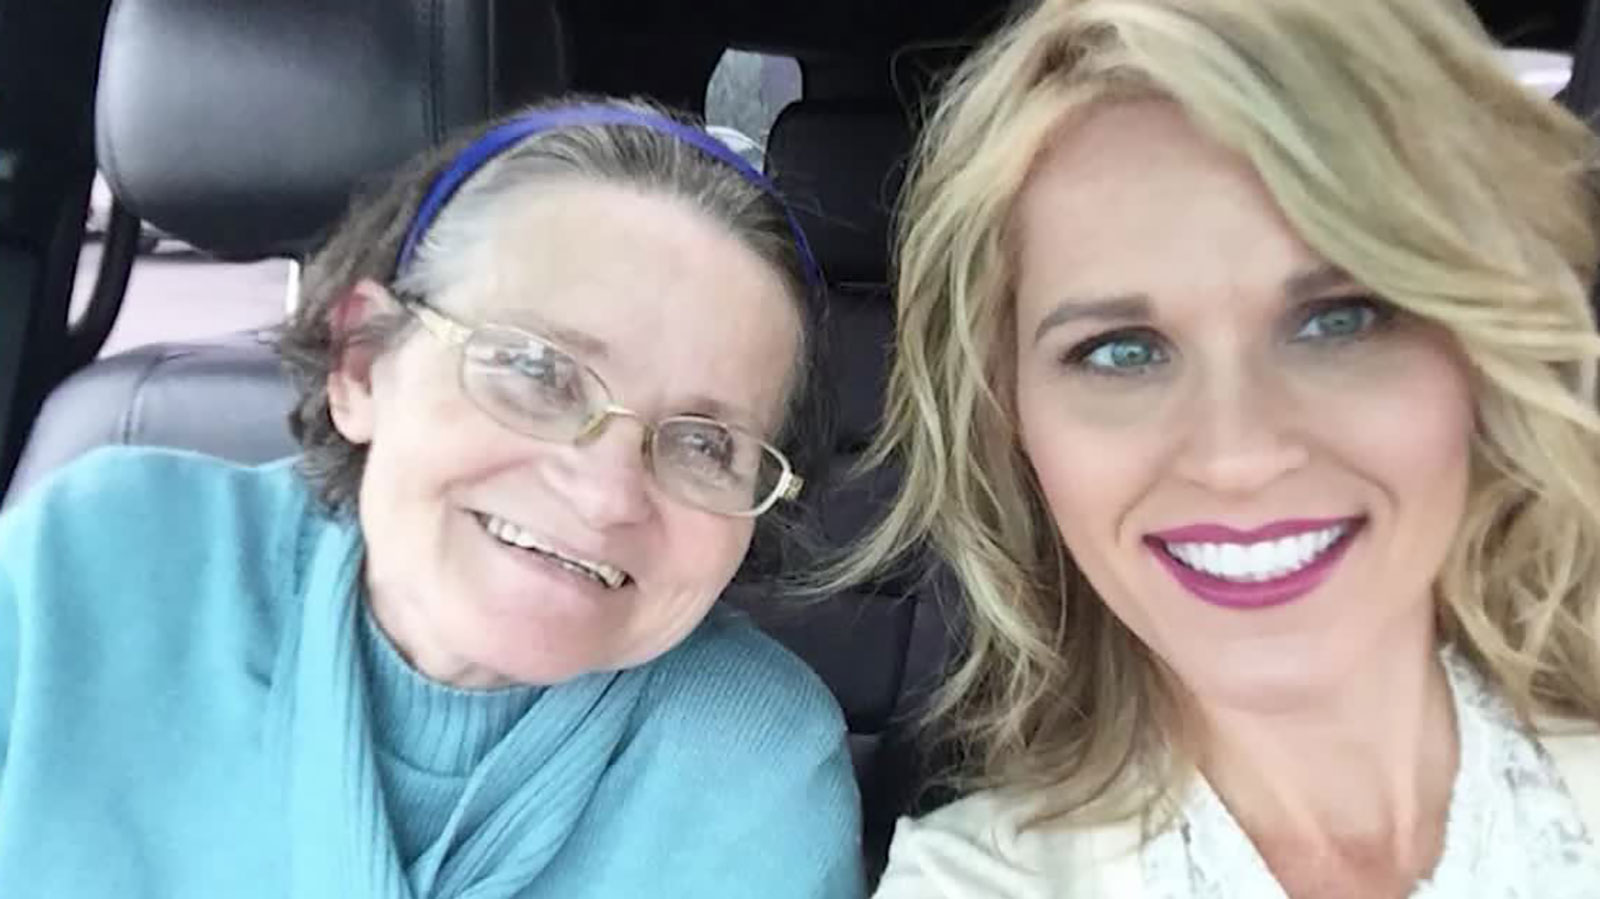 Woman takes third job at assisted living facility to spend time with quarantined mother